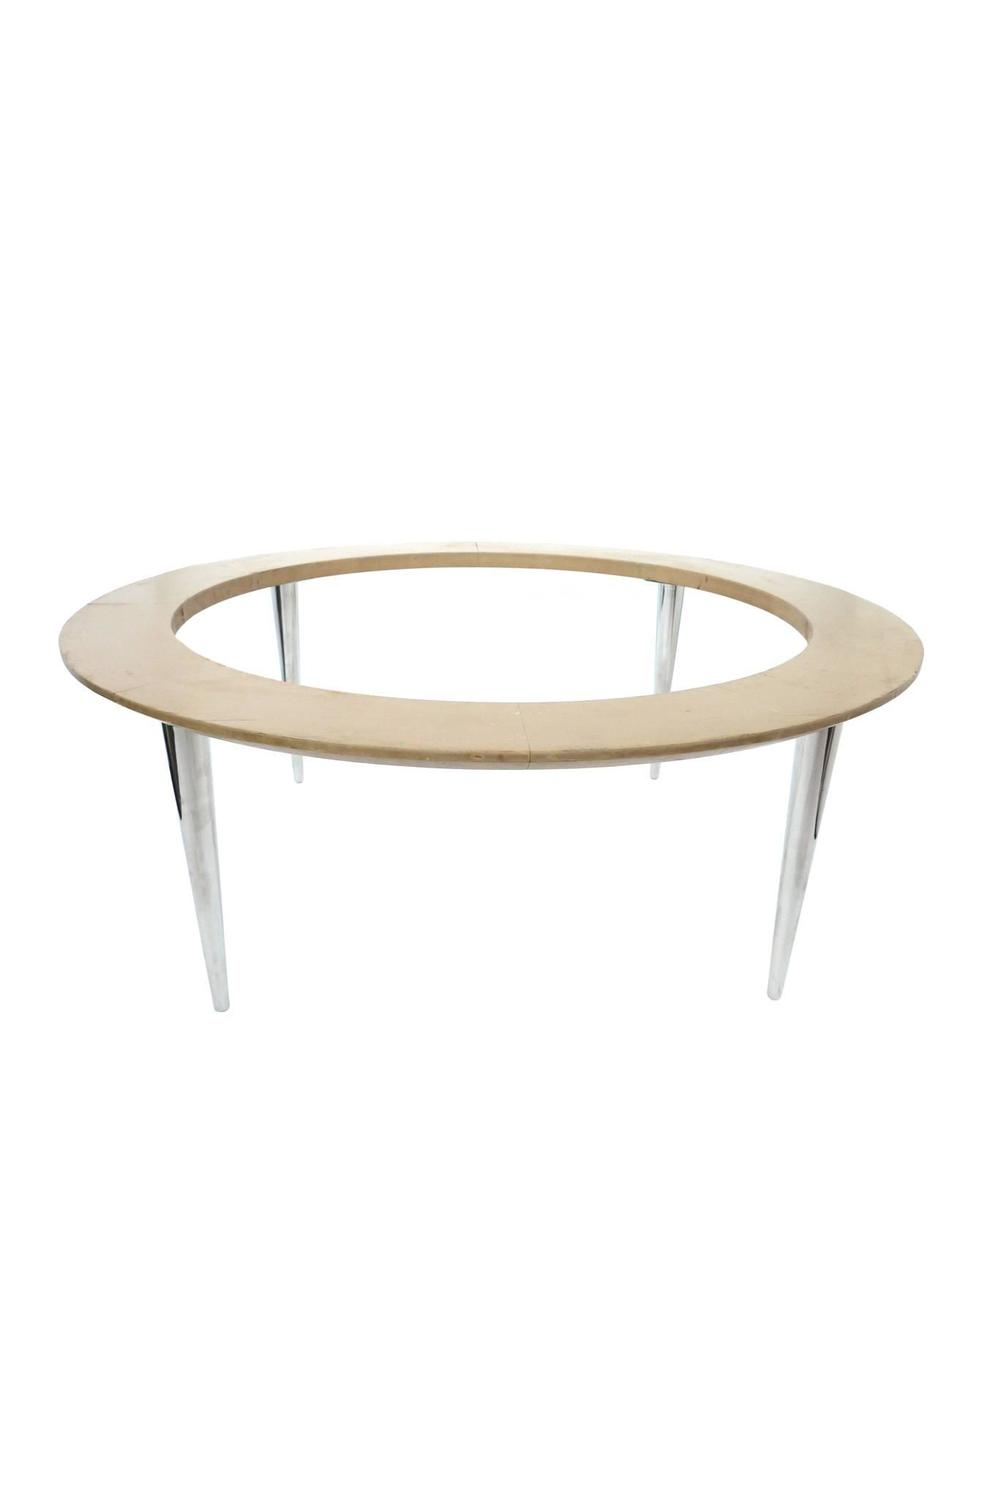 Midcentury Weiman Round Travertine Cocktail Table For Sale At 1stdibs